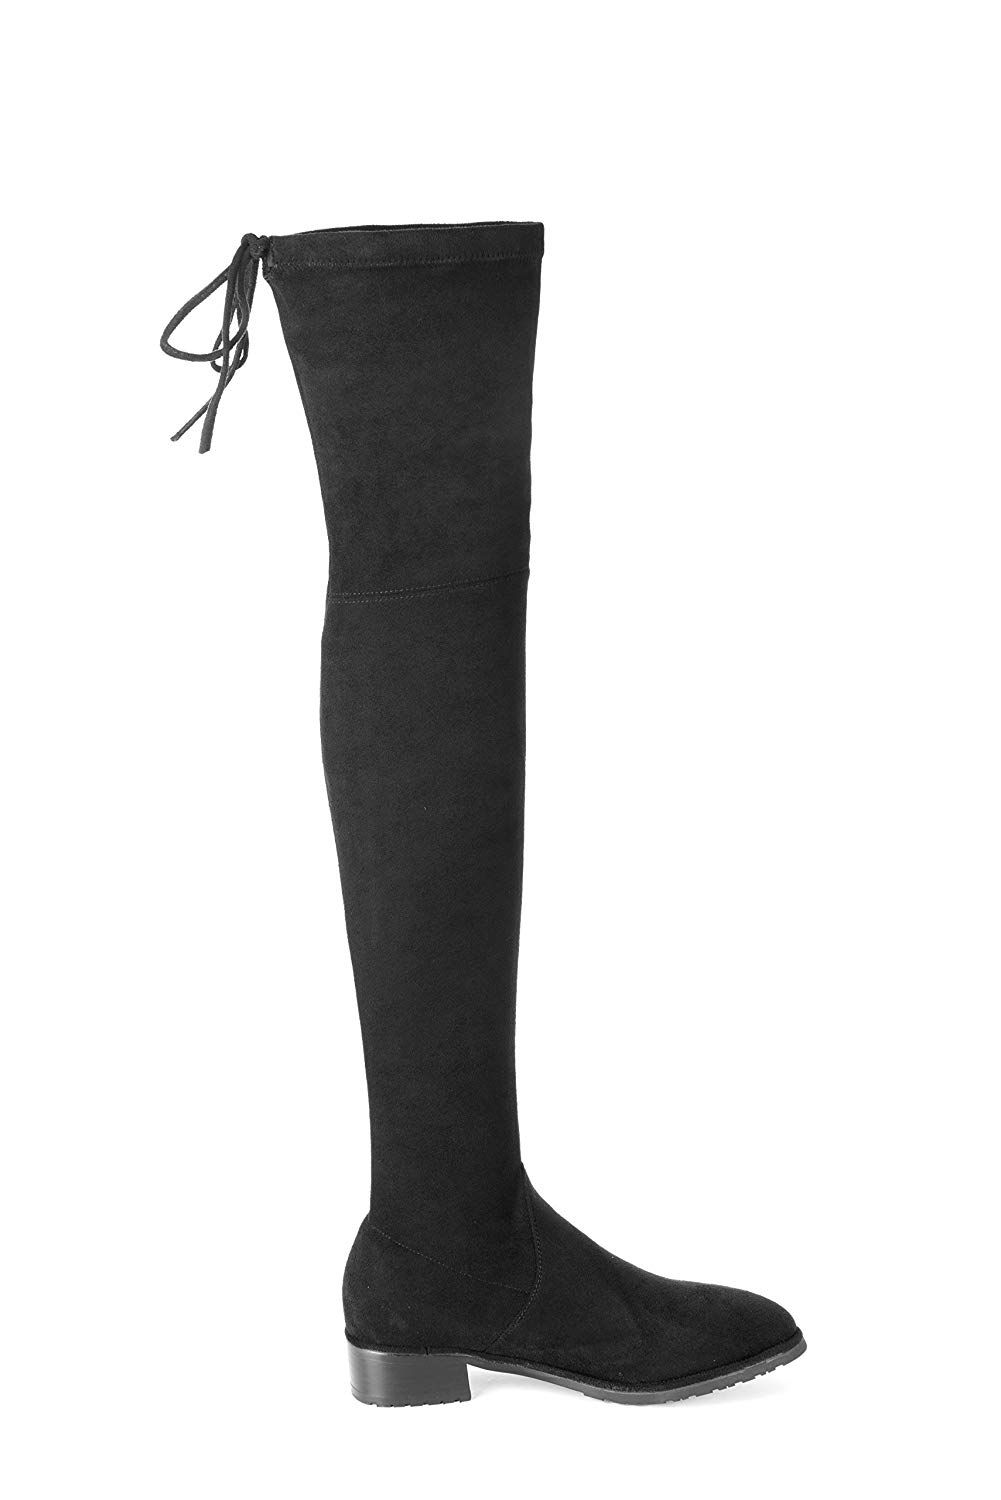 1301a7afcce MIUINCY Thigh High Boots Women Fashion Snow Boot Stretch Fabric Over The Knee  Boots Sexy Womens